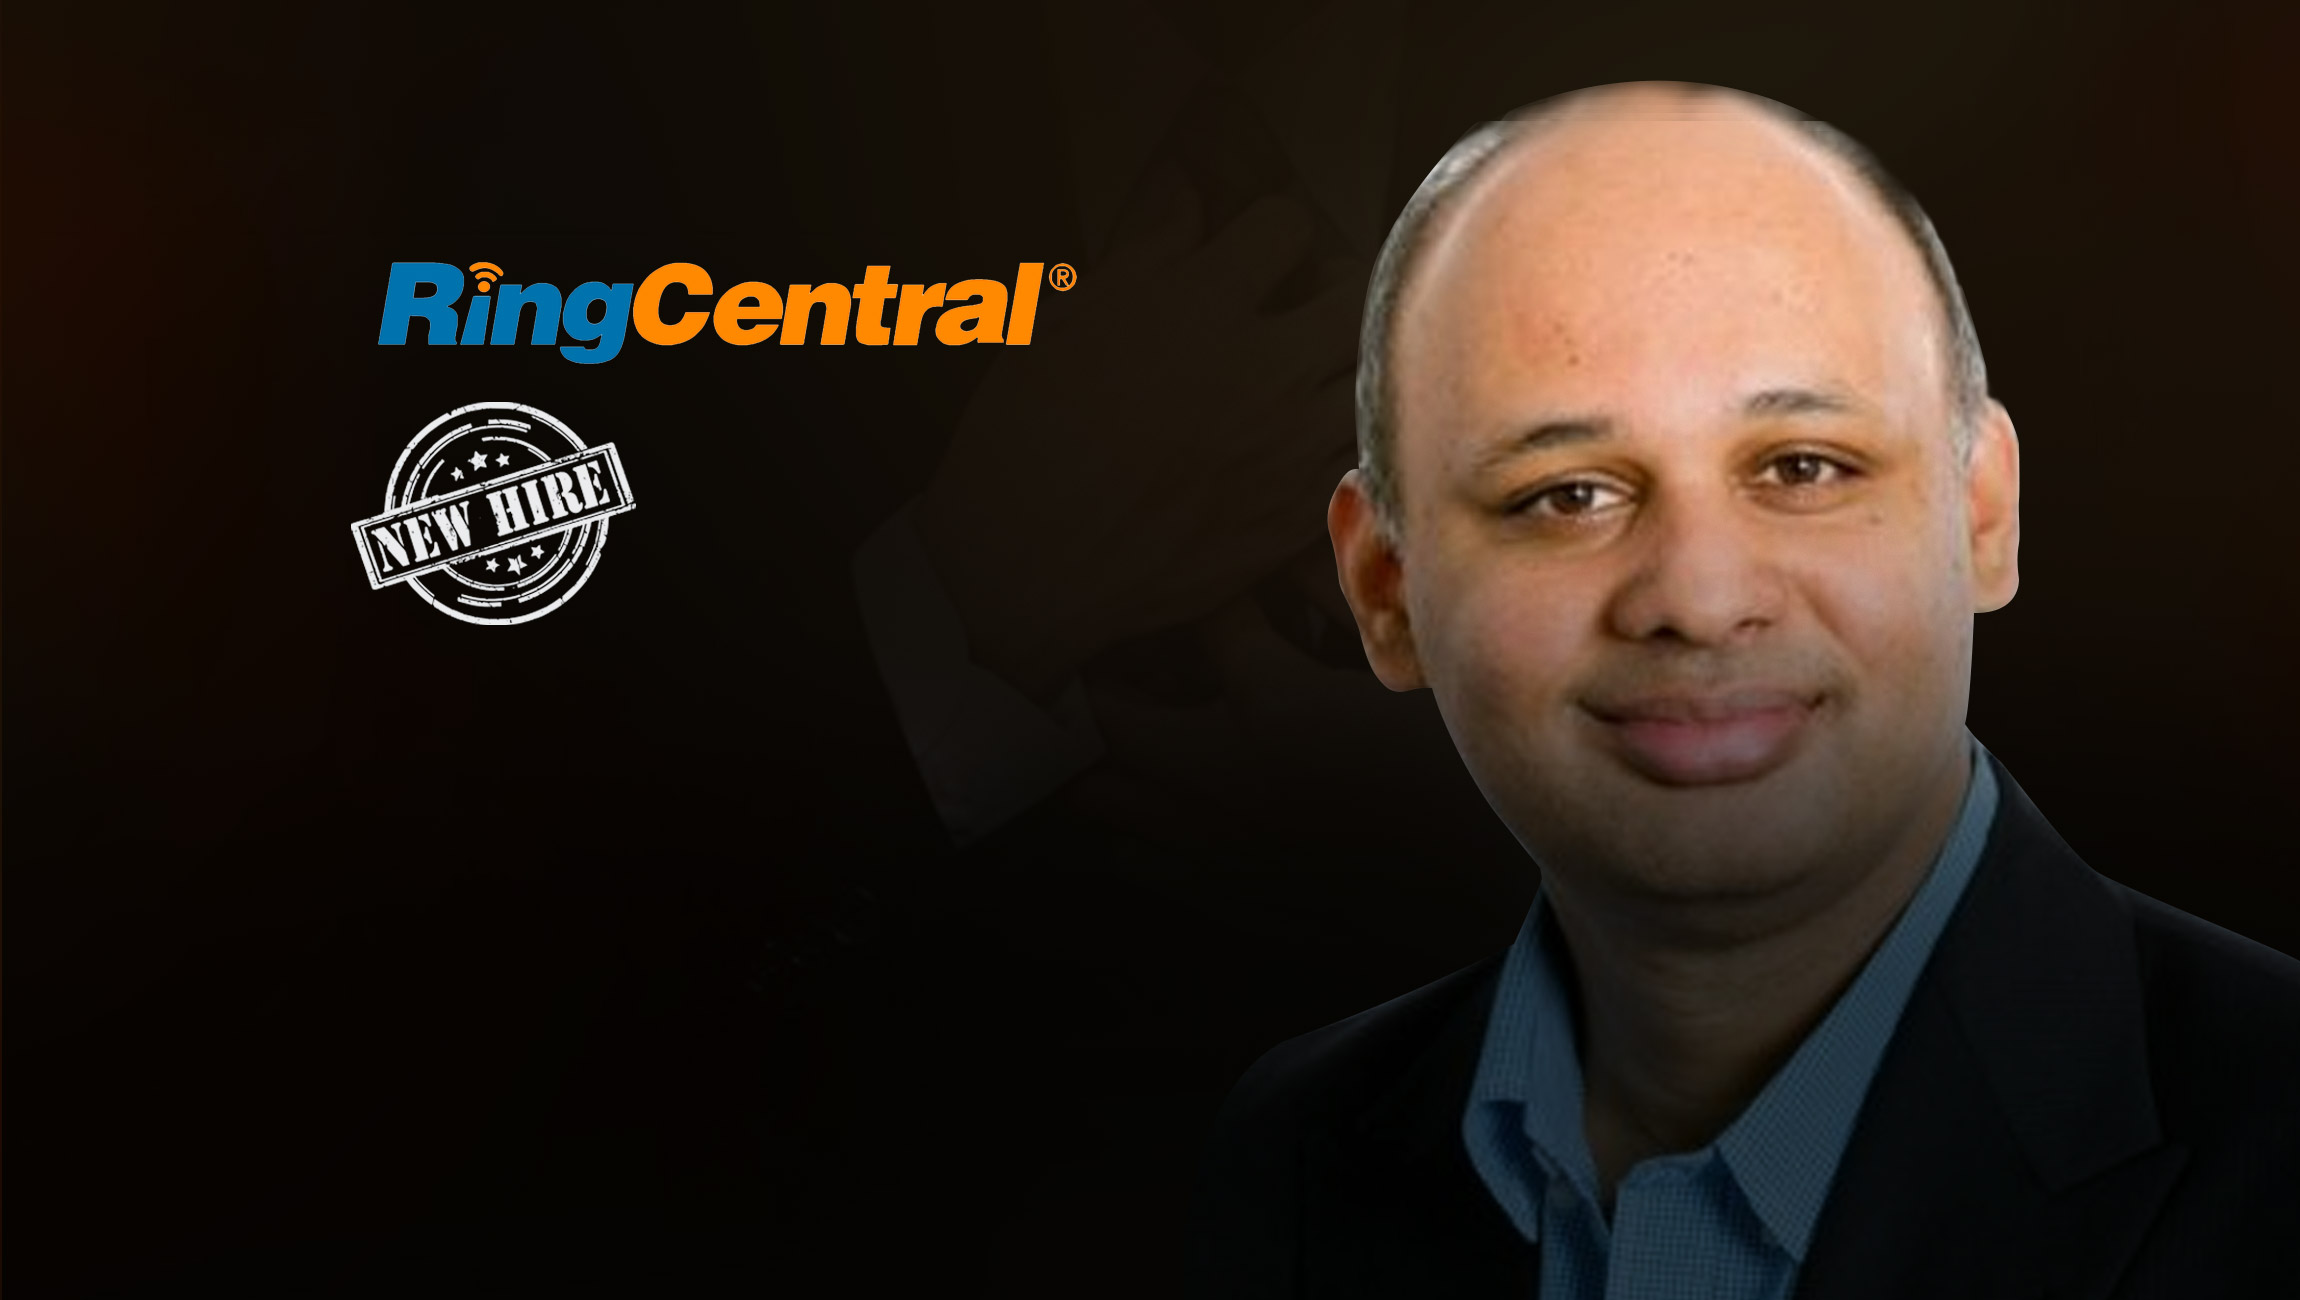 Anand Eswaran, Former Microsoft Corporate Vice President for Global Enterprise Business, Joins RingCentral as President and Chief Operating Officer